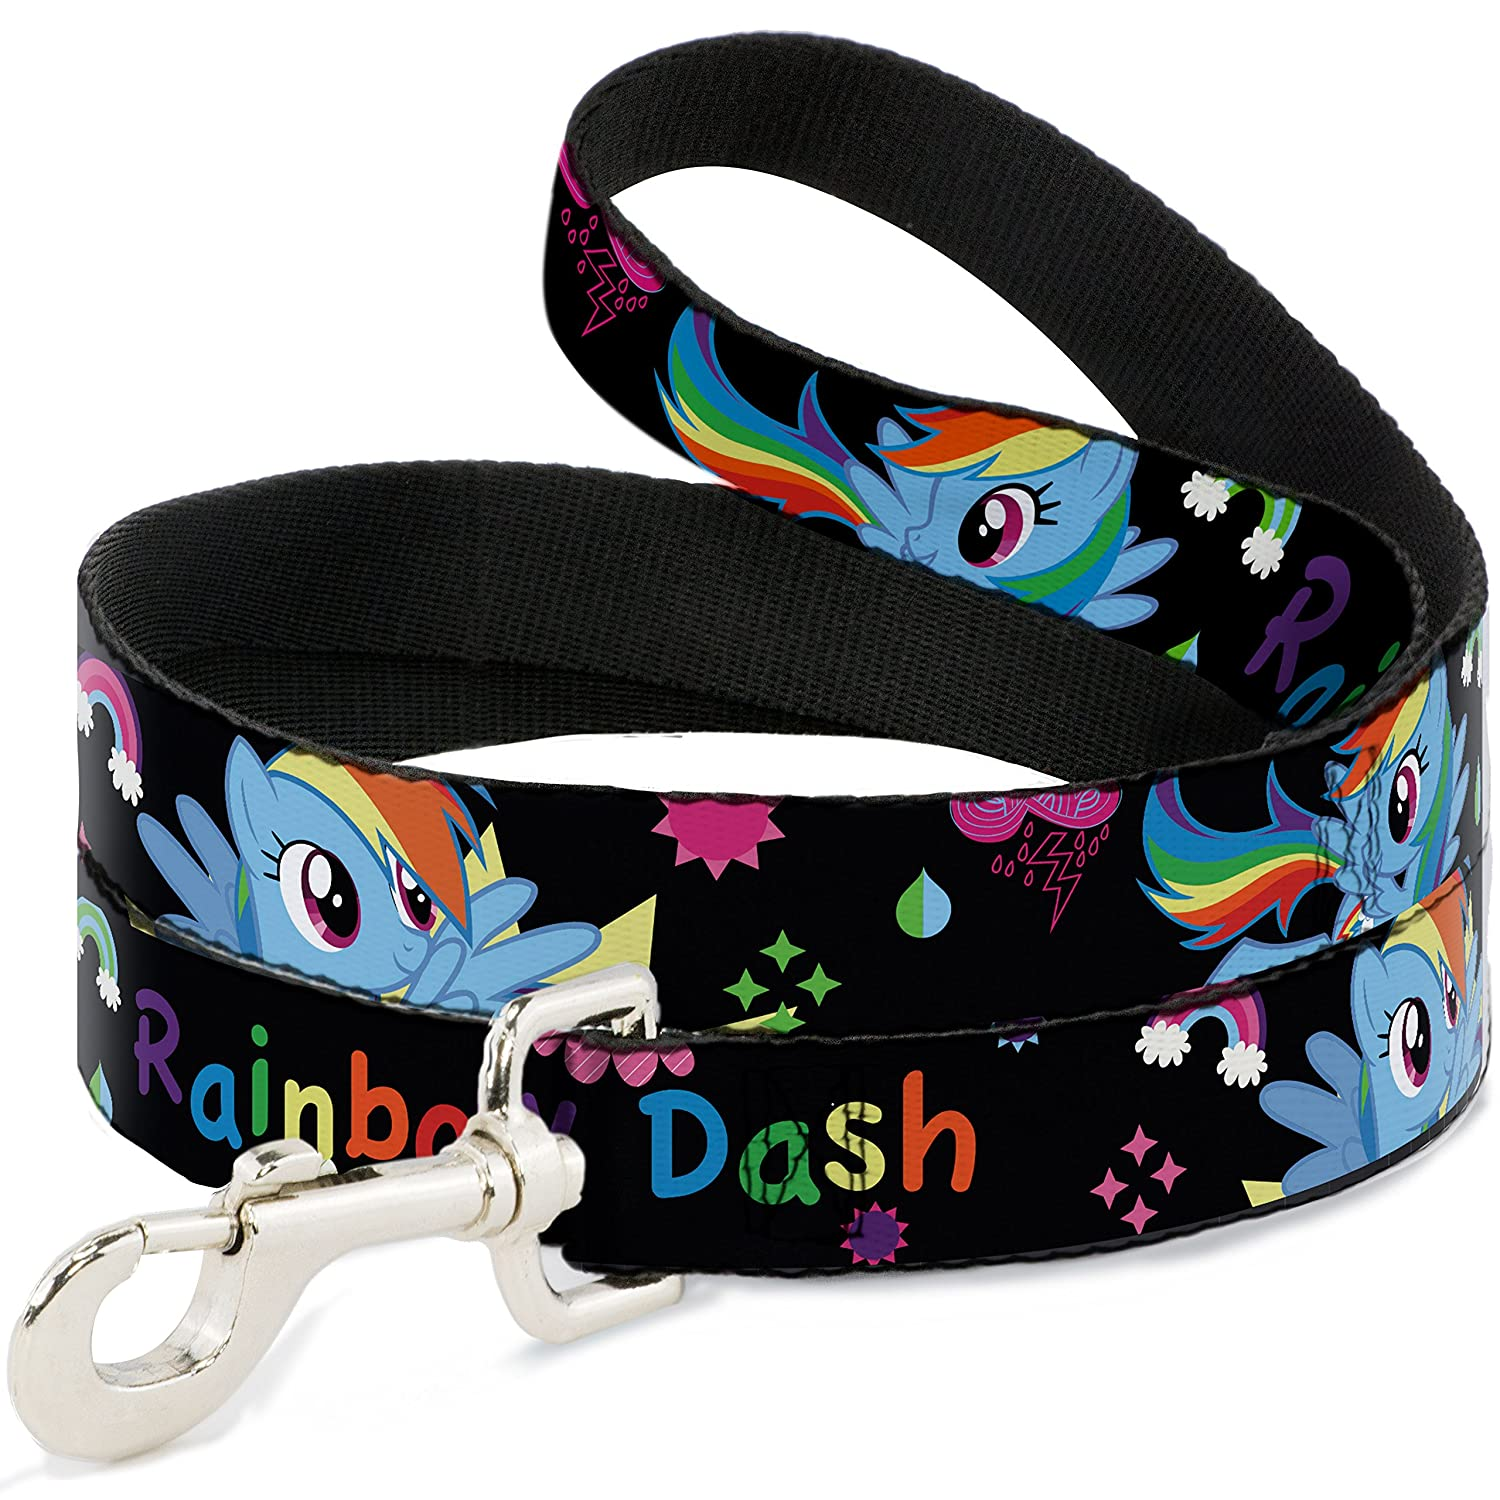 6Ft. Long  1.0 Inches wide Regular Buckle-Down Rainbow Dash with Face Close Up Black  Dog Leash, 6'